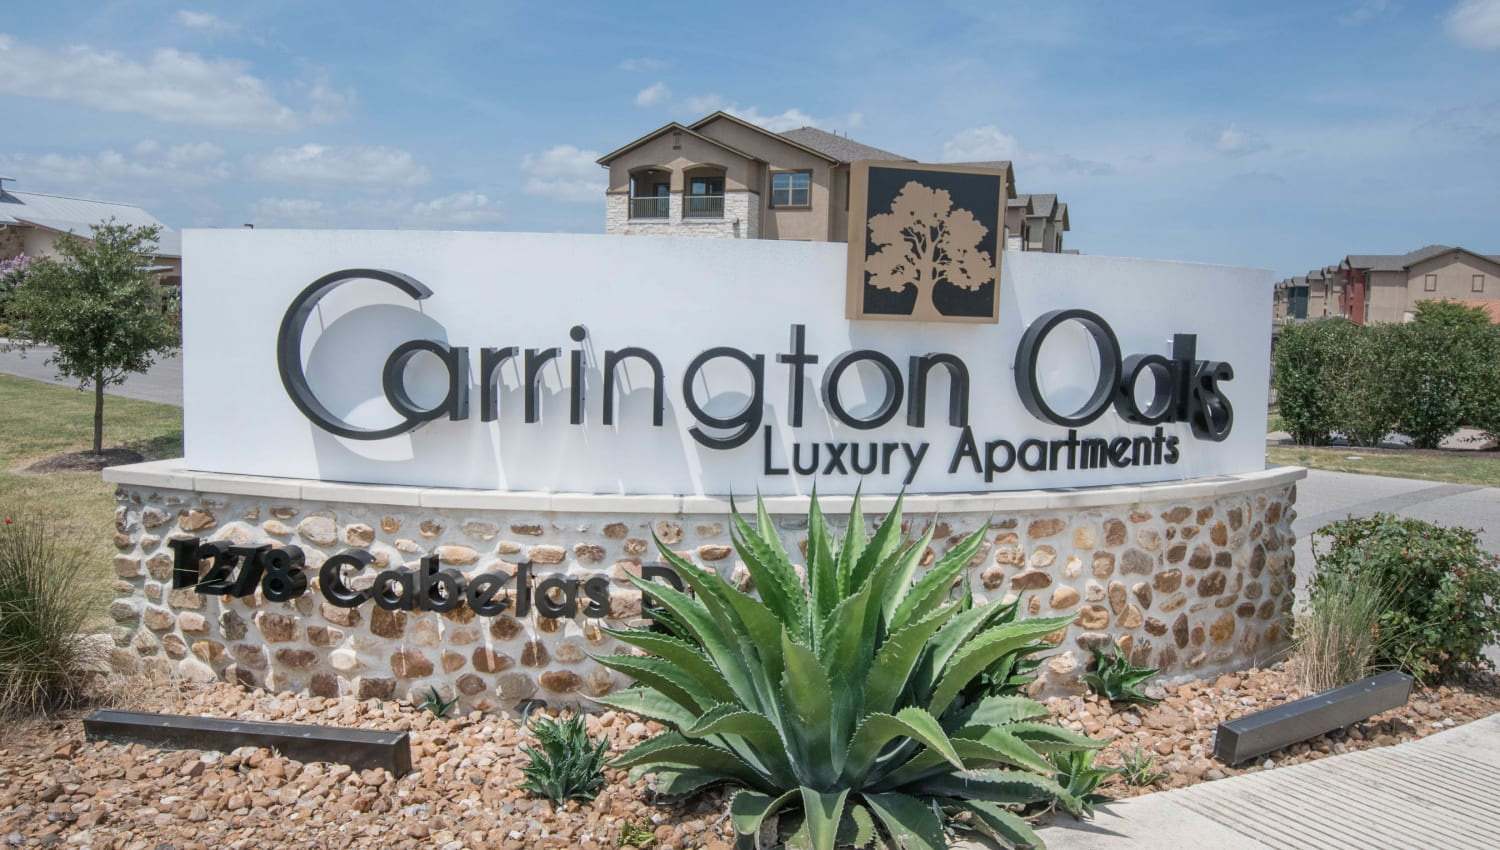 Our sign welcoming residents and their guests to Carrington Oaks in Buda, Texas